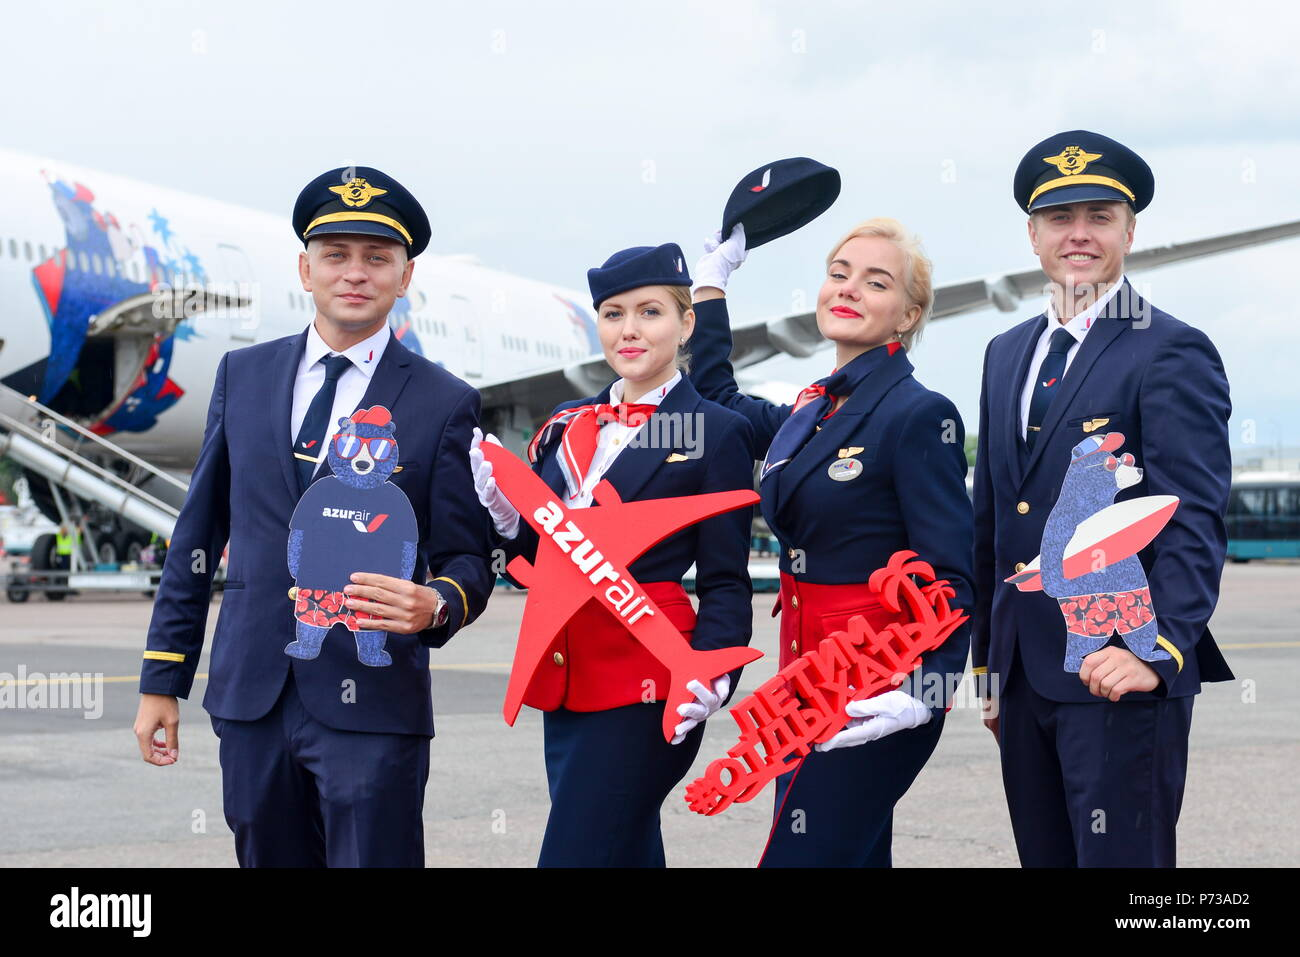 Moscow Region, Russia. 04th July, 2018. MOSCOW REGION, RUSSIA - JULY 4, 2018: Crewmembers of Azur Air's Boeing 777-300ER long-range wide-body jet airliner pose at Domodedovo International Airport. Marina Lystseva/TASS Credit: ITAR-TASS News Agency/Alamy Live News - Stock Image